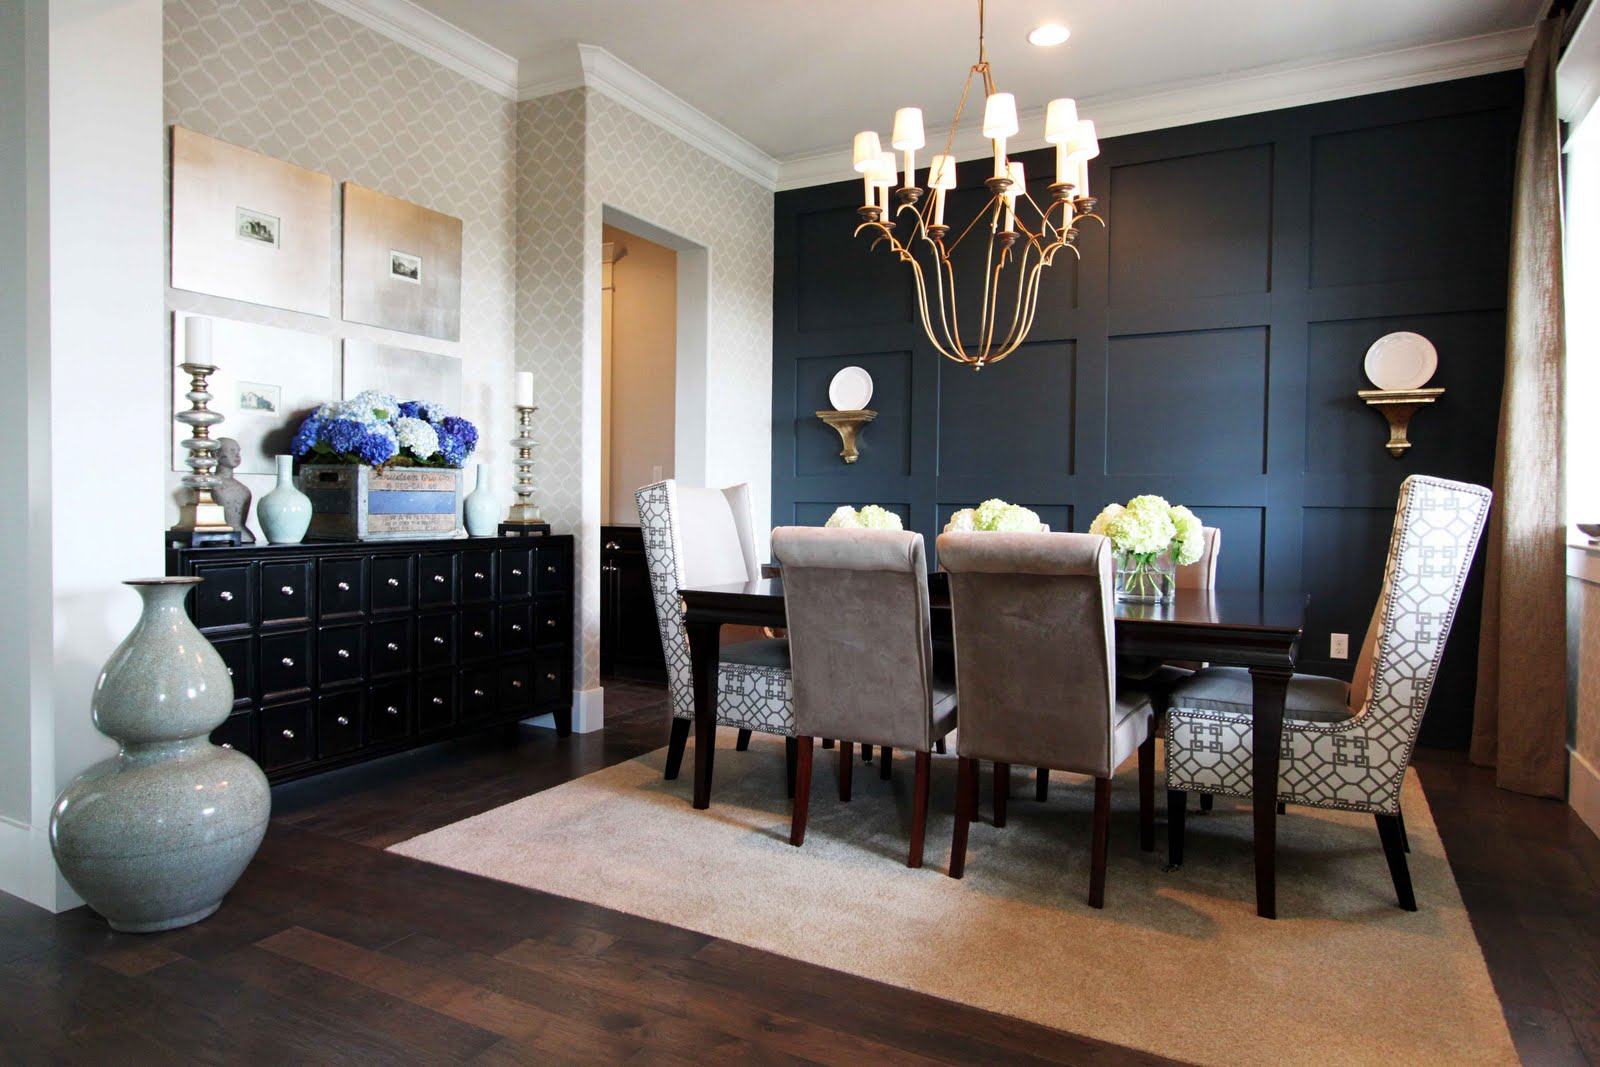 Stiles fischer interior design hgtv showhouse showdown for Dining room interior images